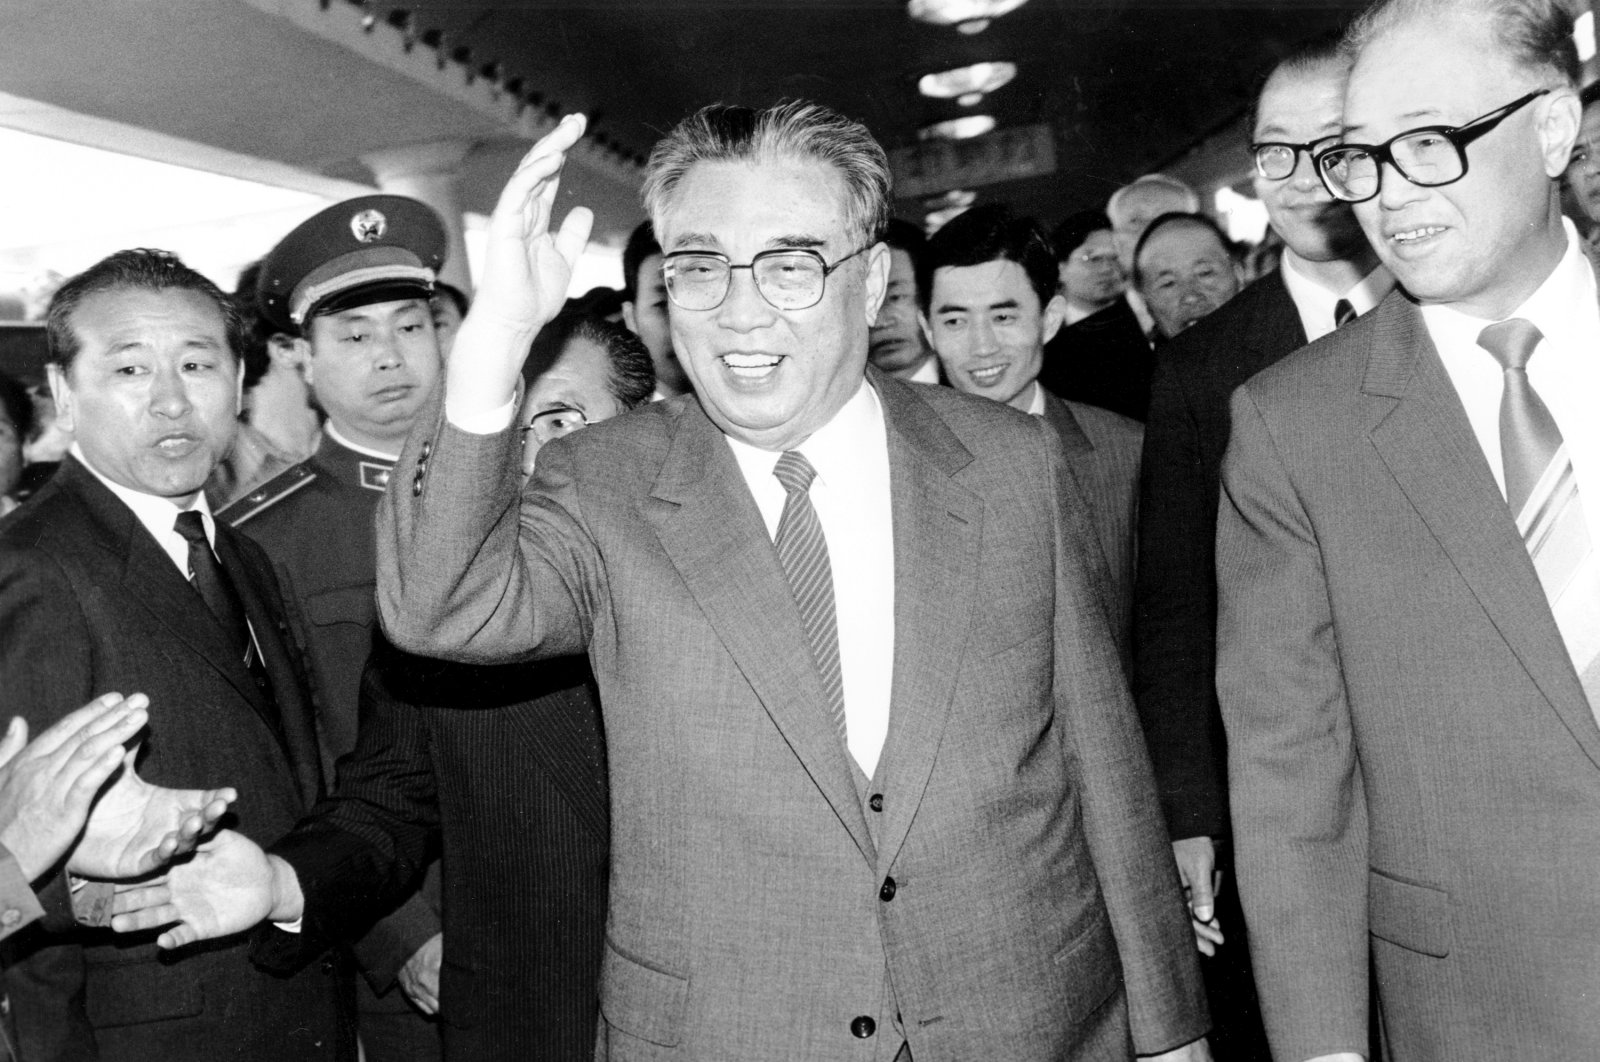 In this May 21, 1987, file photo, then North Korean President Kim Il Sung, center, and then Chinese Premier Zhao Ziyang make their way through a crowd of well-wishers at the train station in Beijing. (AP Photo)